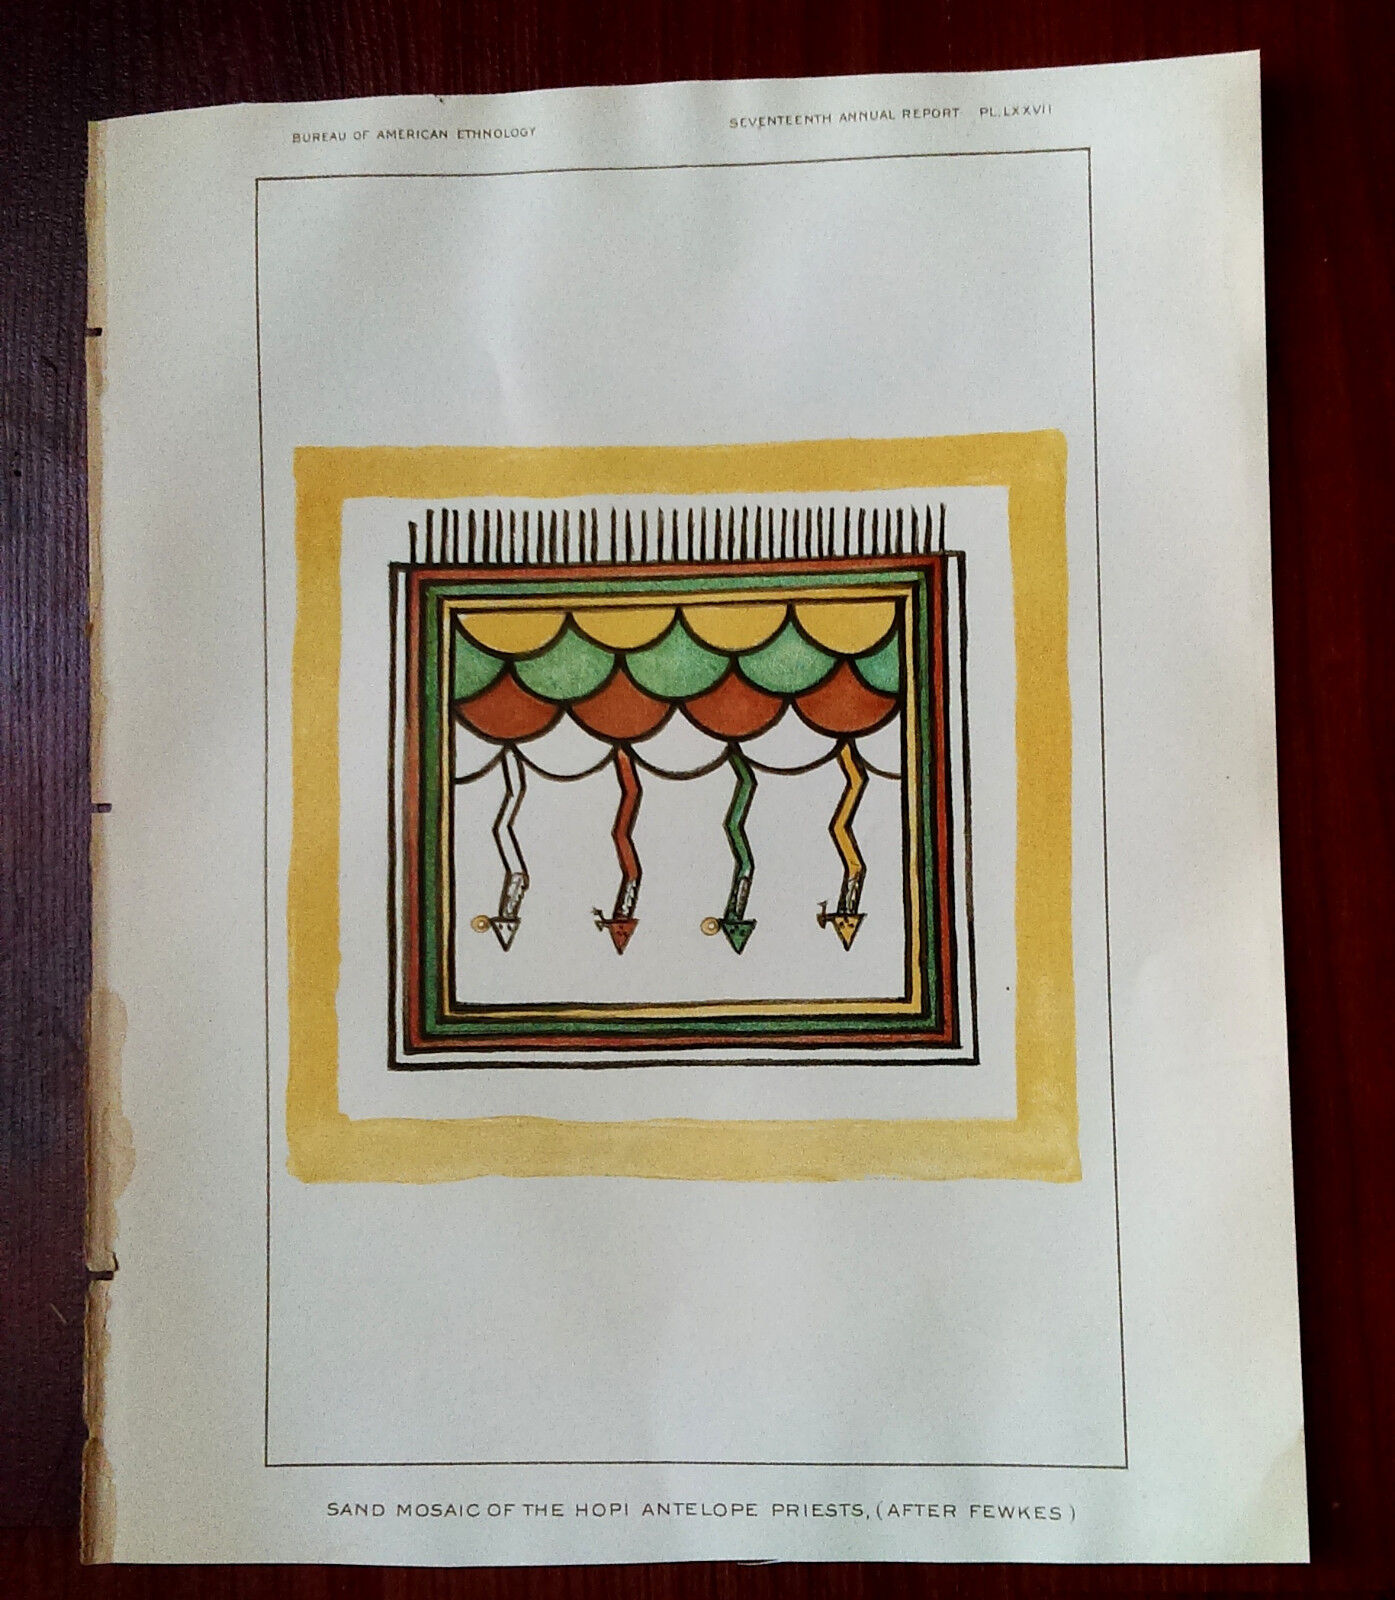 Late 1800s Color Book Plate, Sand Mosaic,The Hopi Antelope Priests, After Fewkes